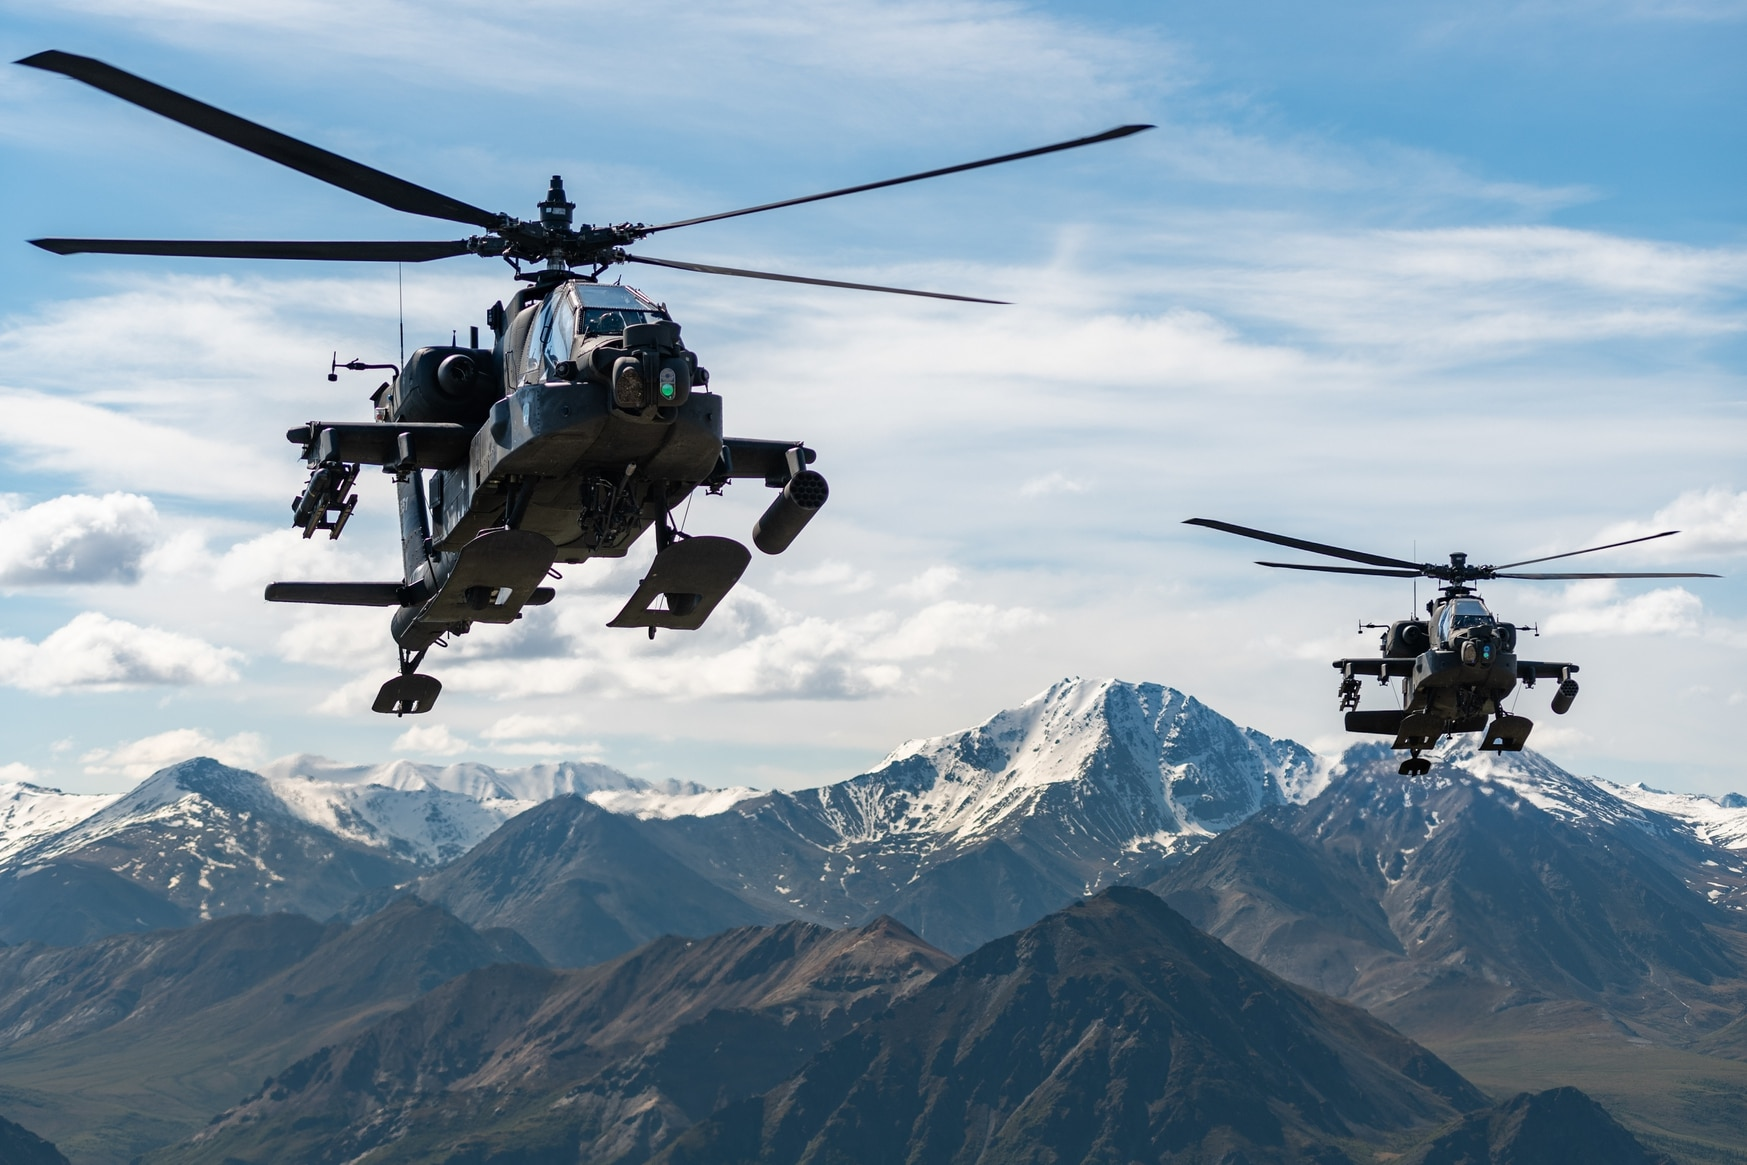 Helicopters flying low or near mountains could be at risk, a senior government official said. (CW2 Cameron Roxberry/U.S. Army)